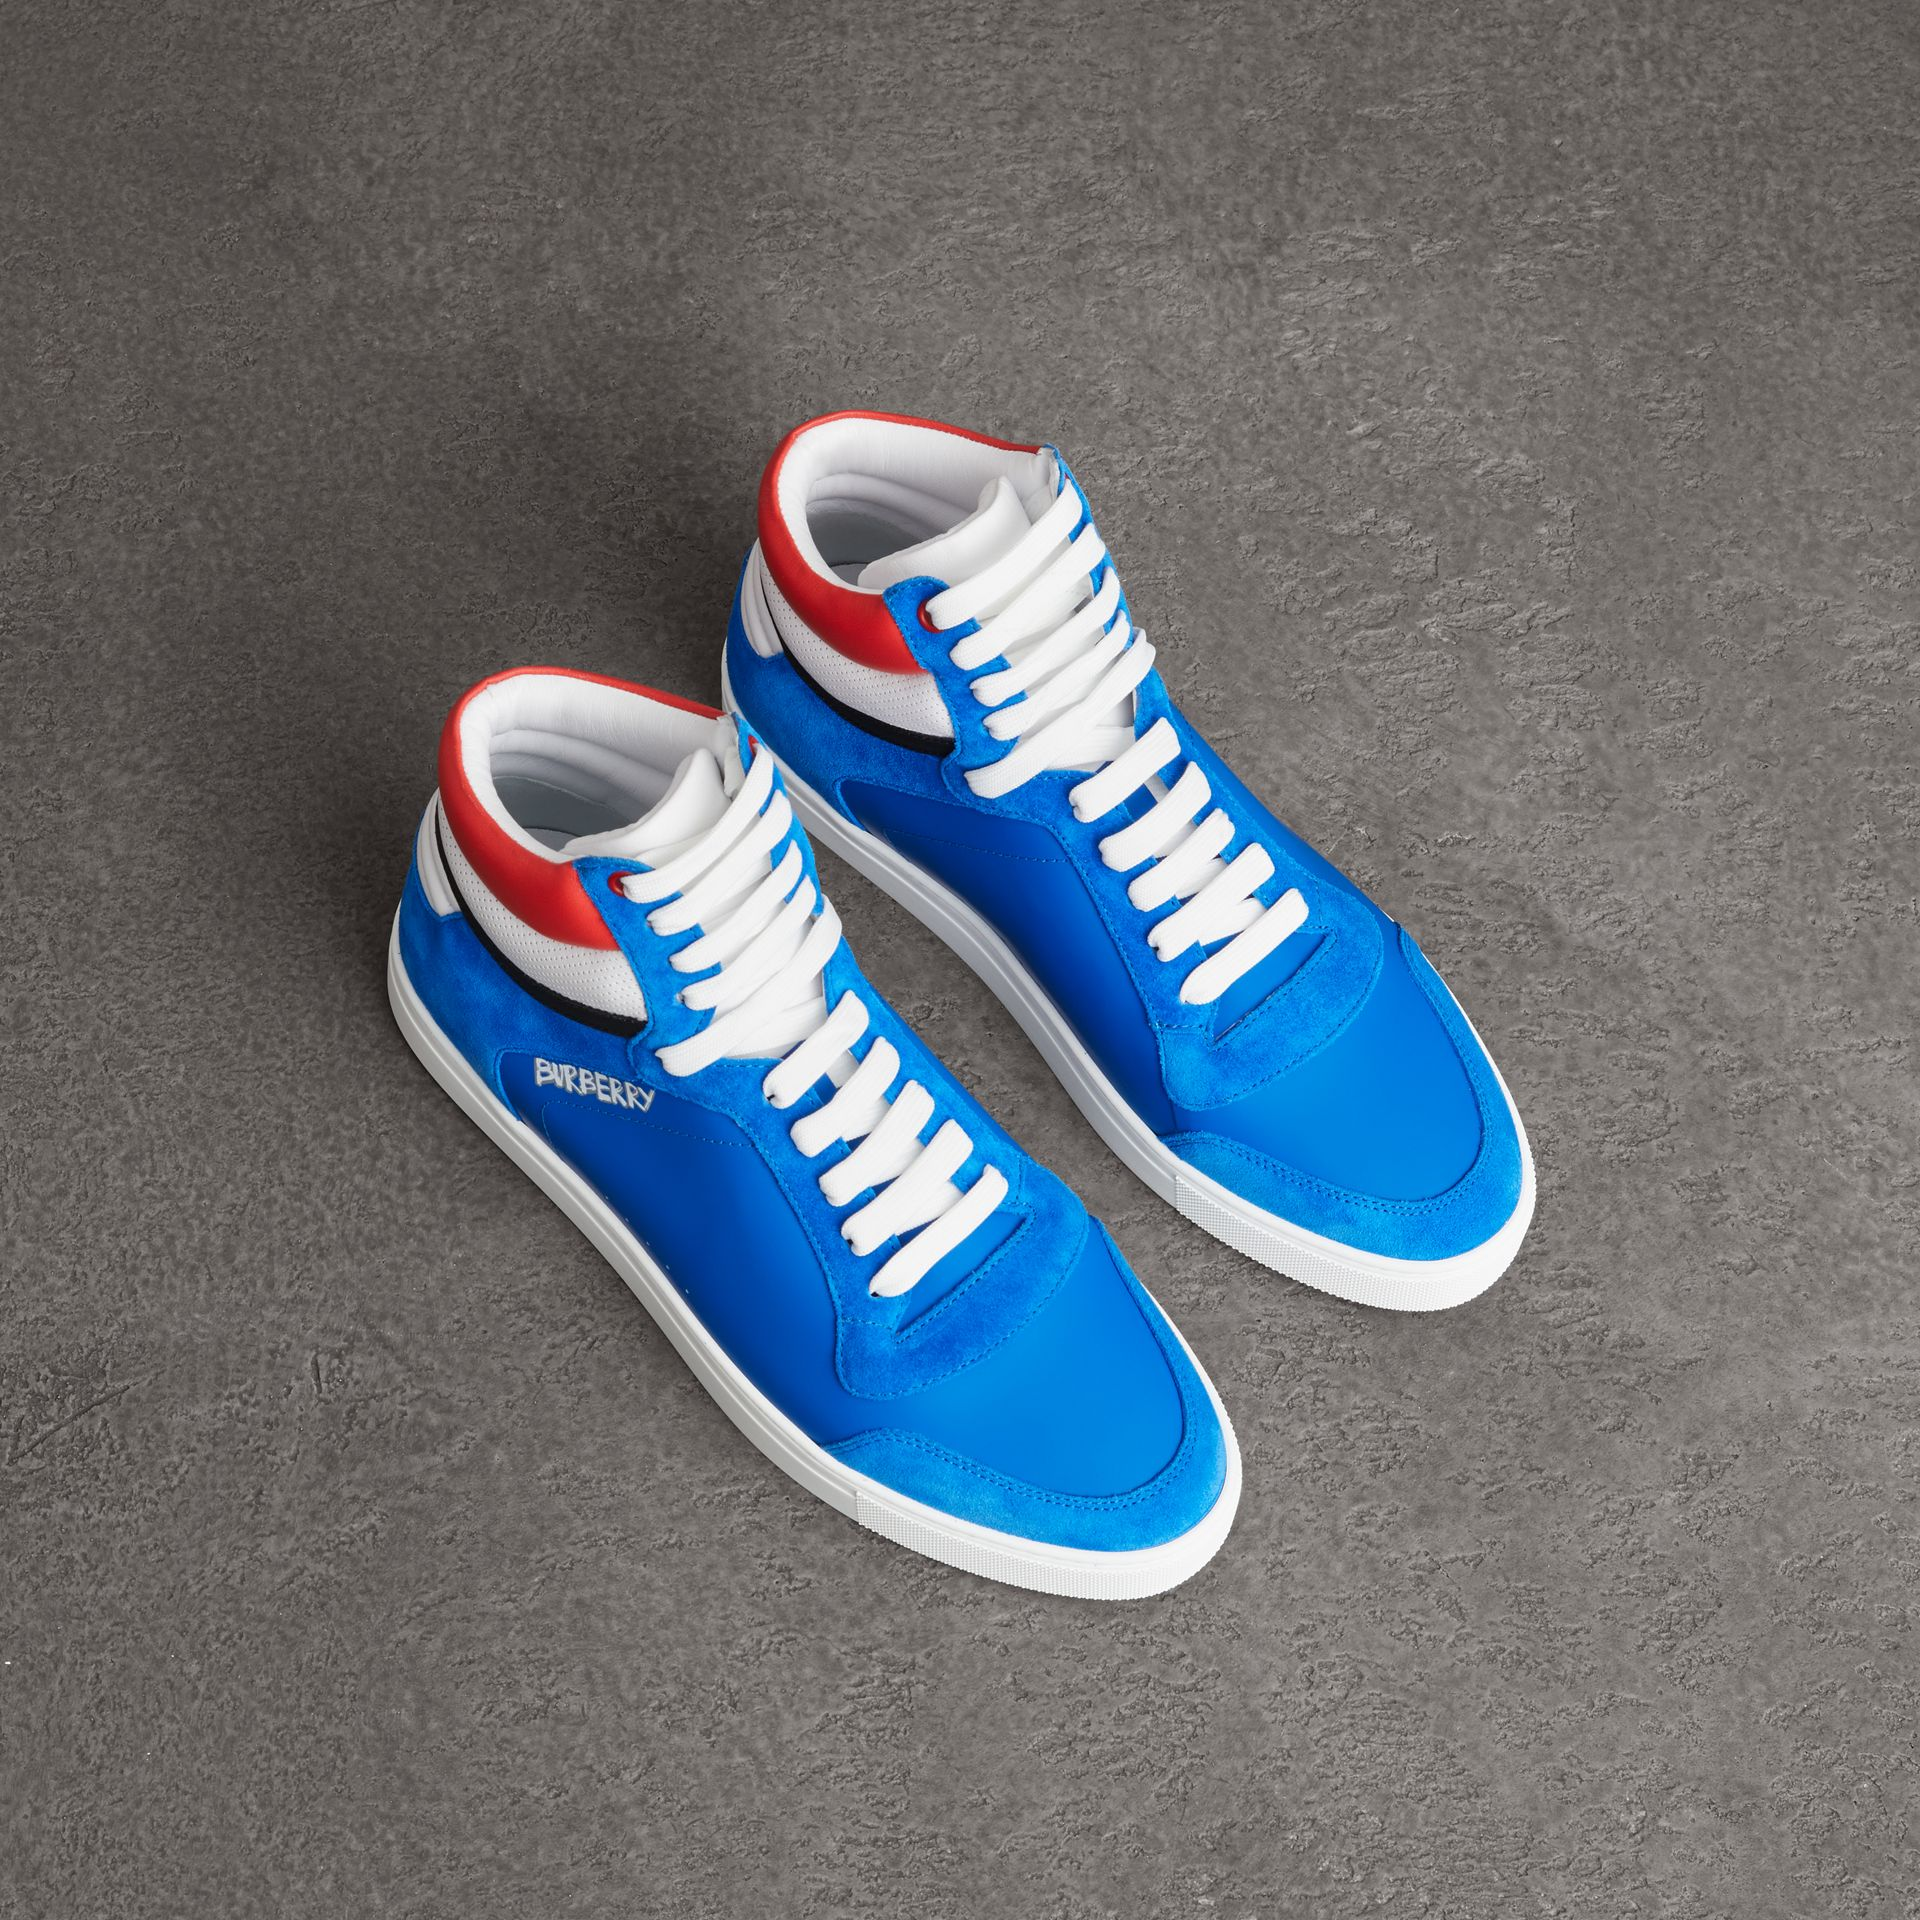 Leather and Suede High-top Sneakers in Bright Sky Blue - Men | Burberry United Kingdom - gallery image 0